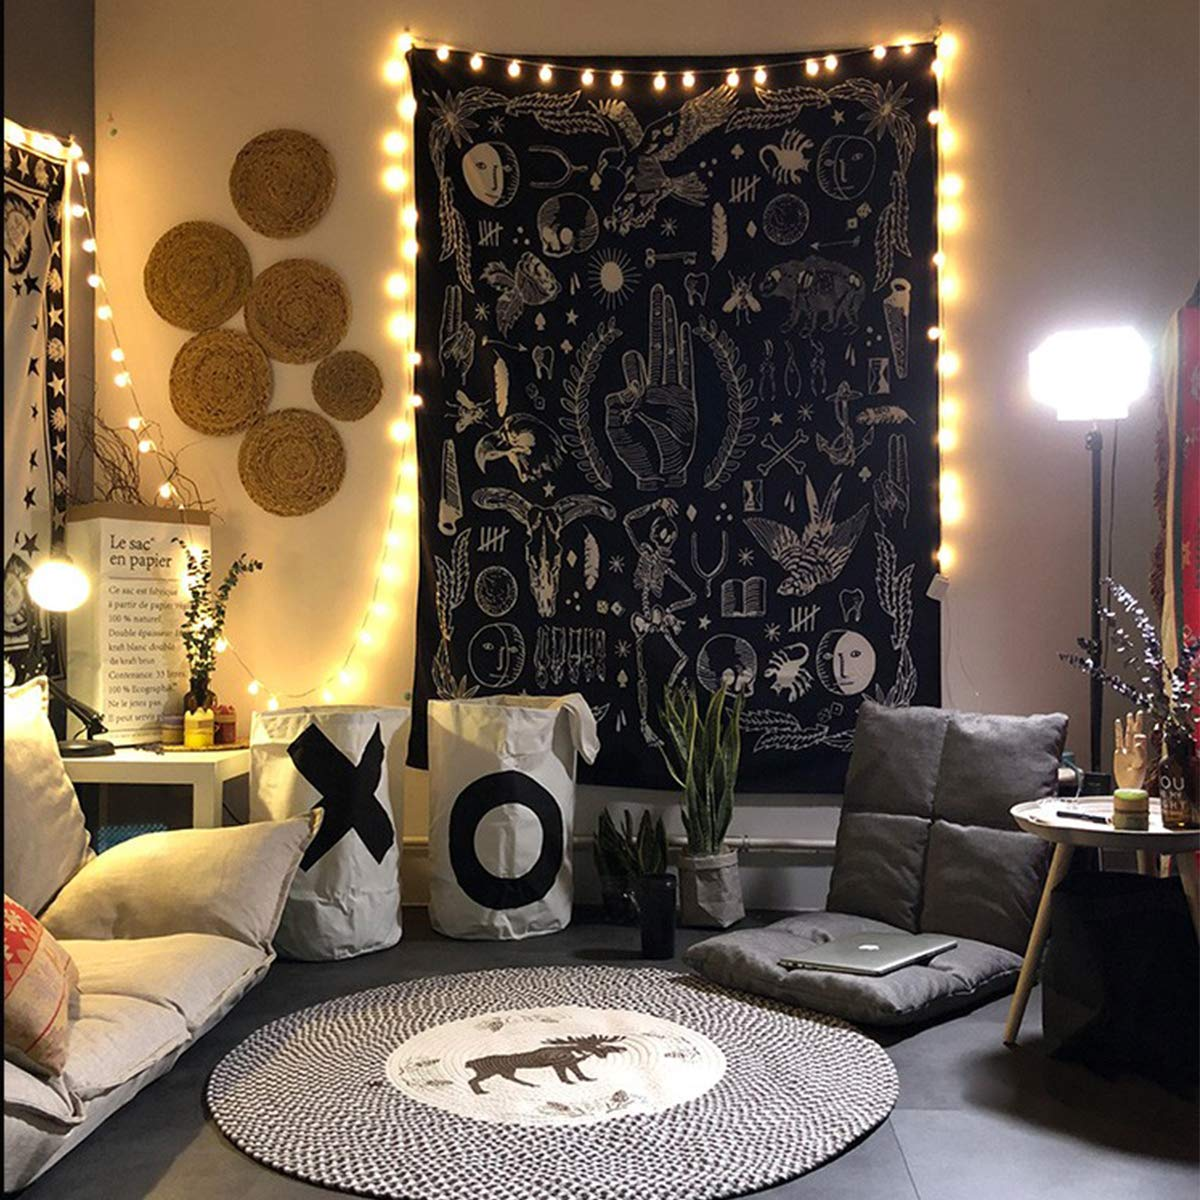 Jeteven Polyester Hanging Tapestry Witchy Black Gothic Tapestry, Wall Hanging Blanket Bedspread Beach Towels Picnic Mat Home Decor 165x148cm